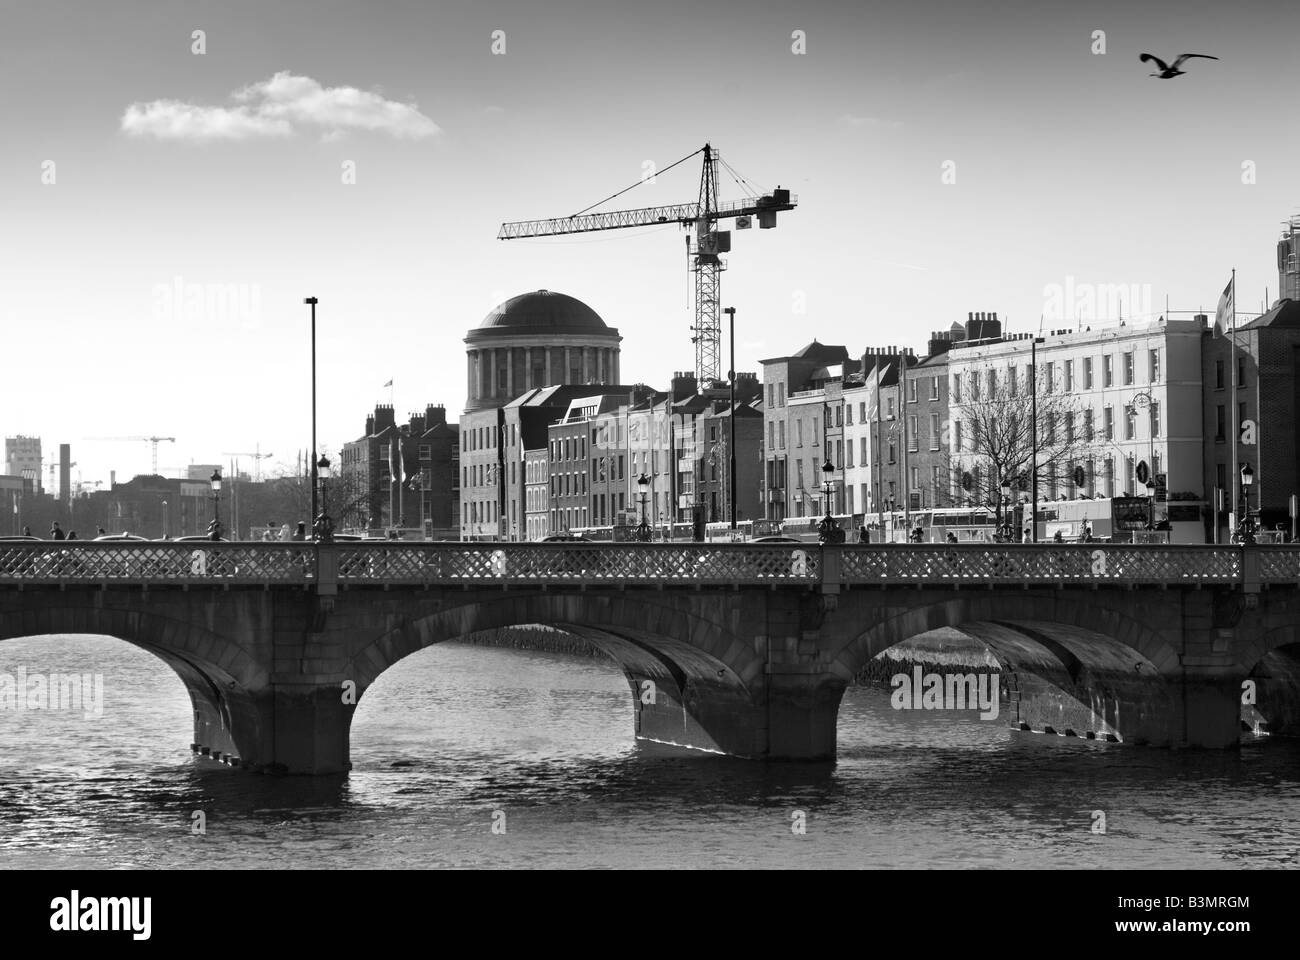 Black and White photograph of the River Liffey and modern Dublin, Ireland - Stock Image